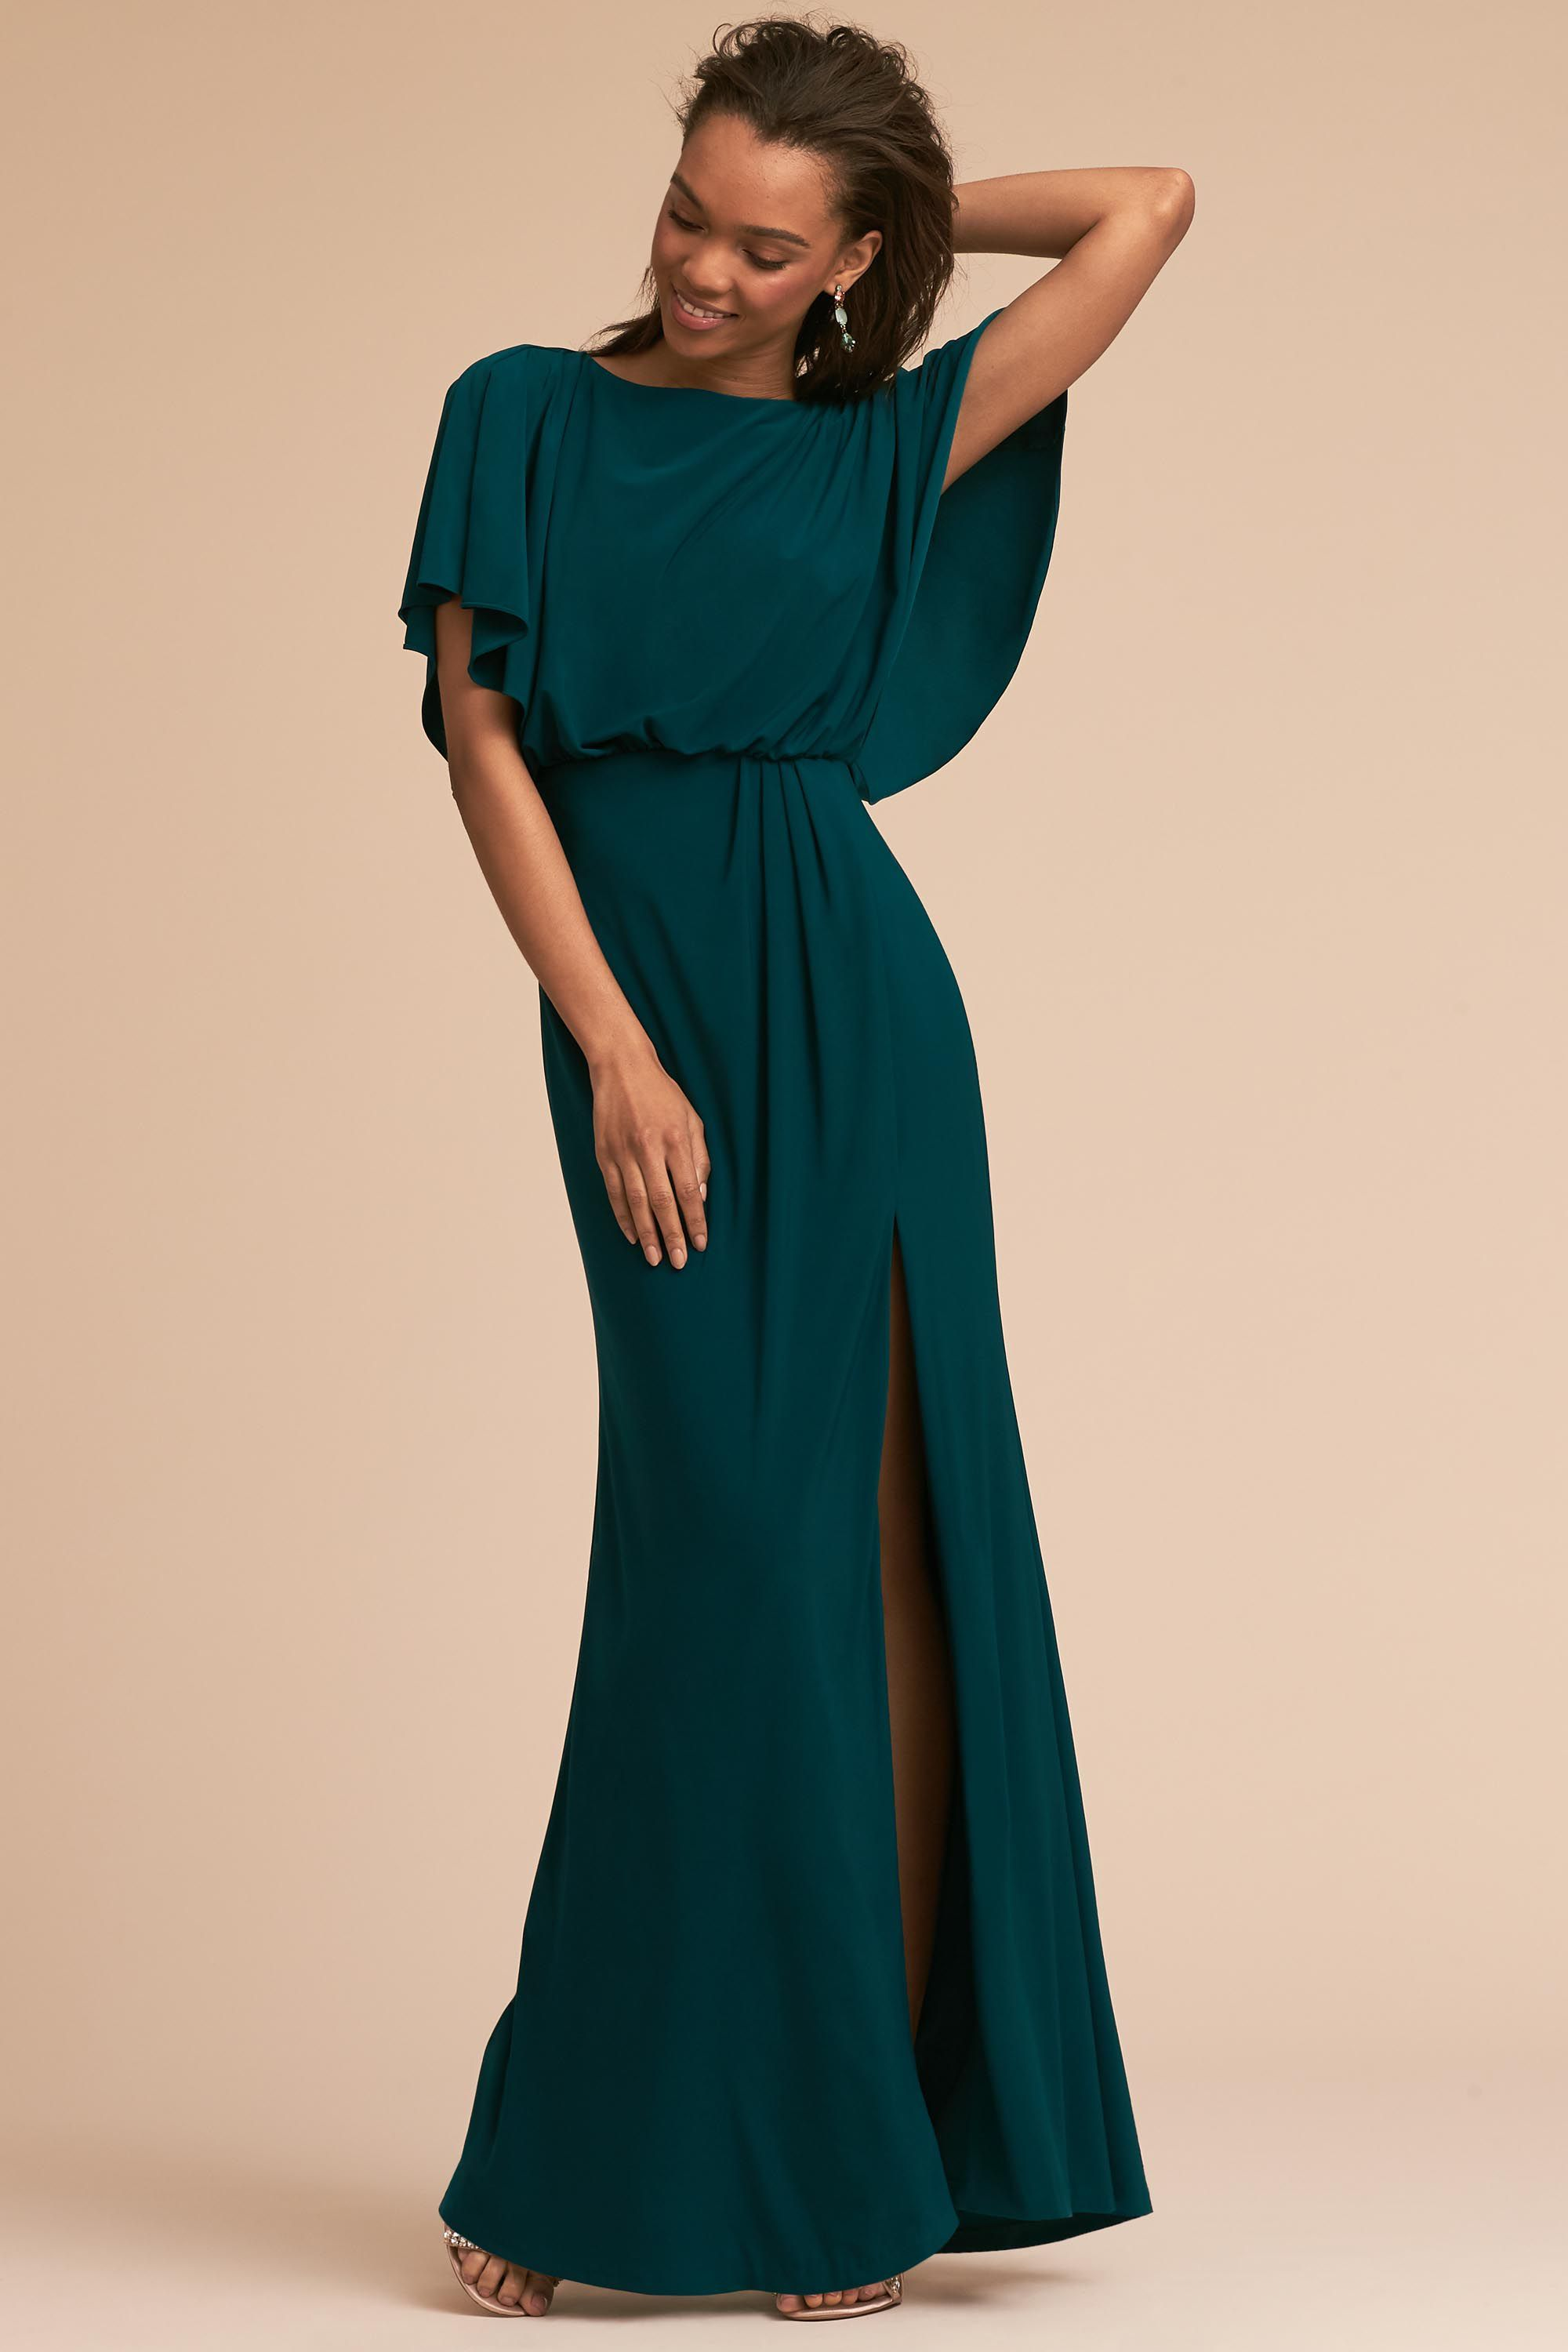 Green dress for wedding party  Lena Dress from BHLDN in Port Wine  Wedding Party  Pinterest